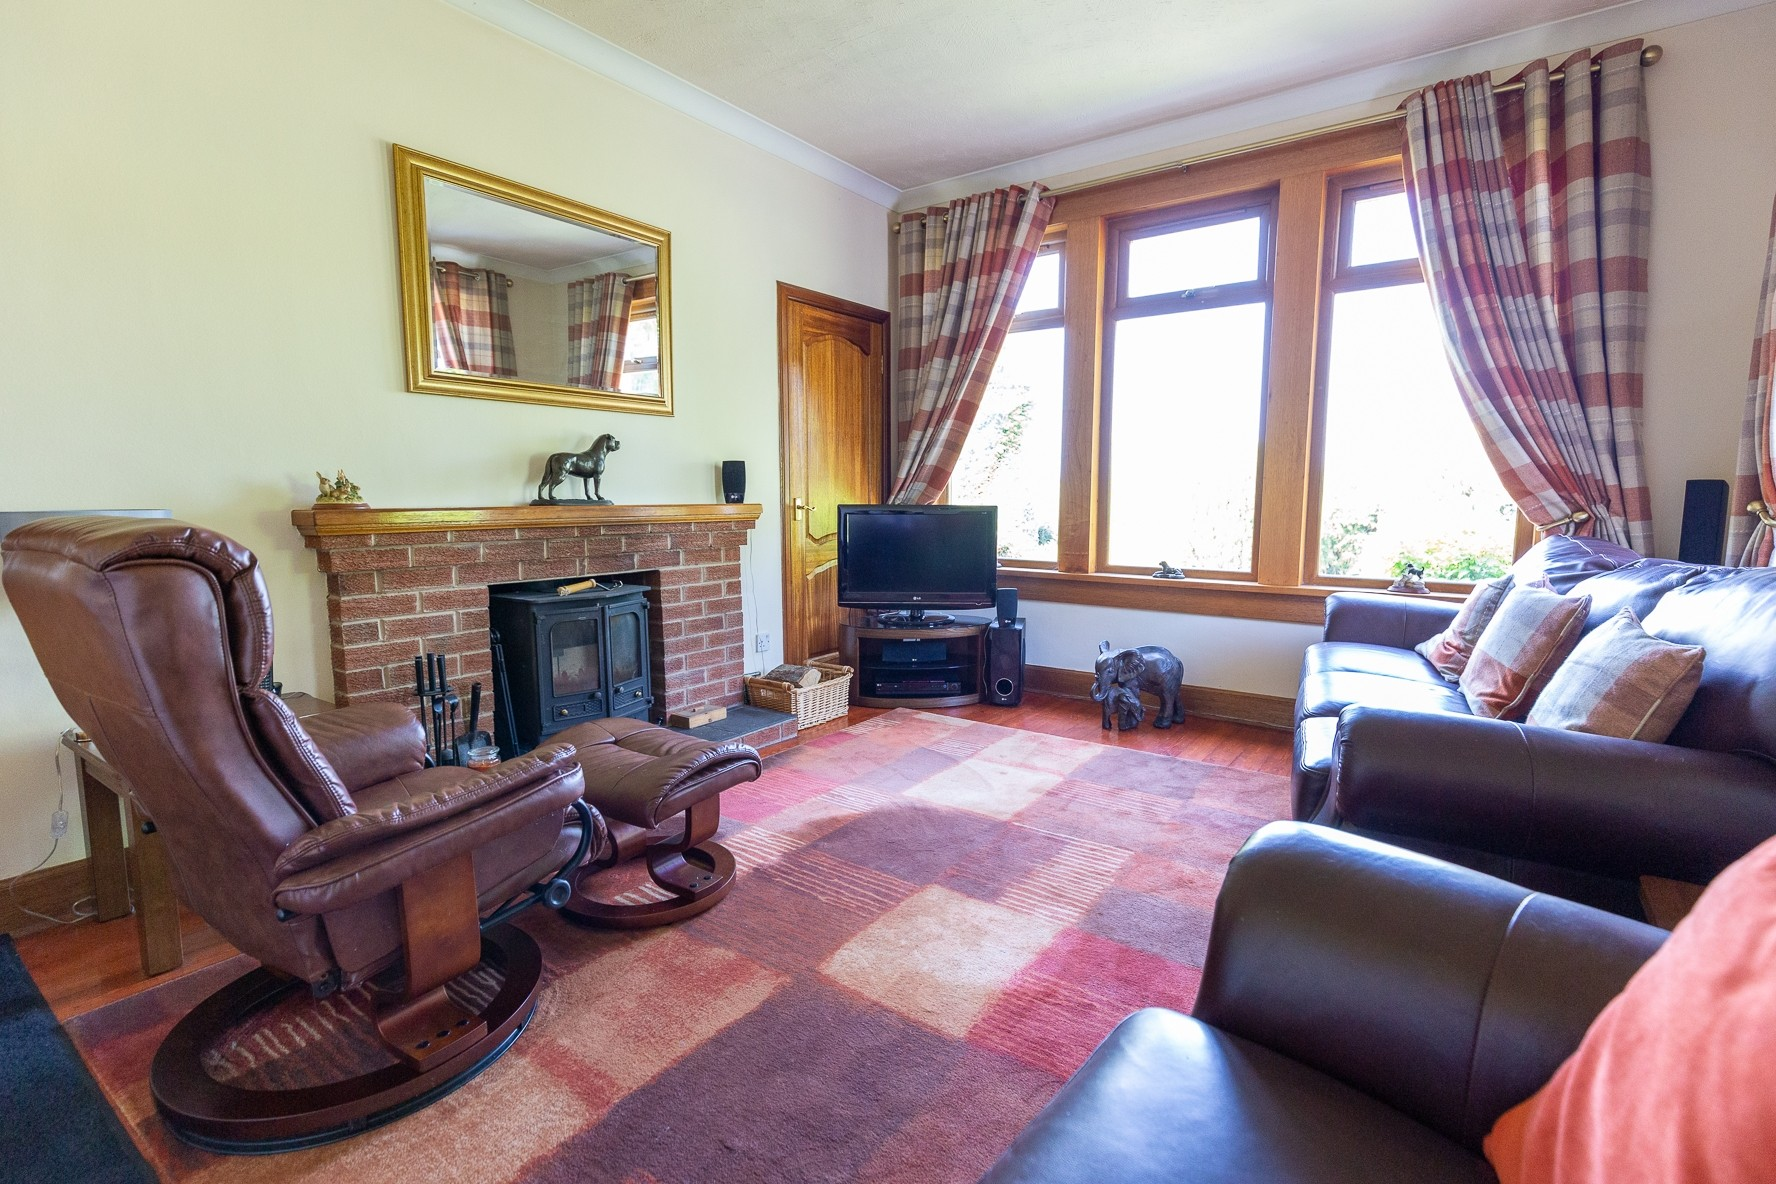 Profitable Boarding Kennels with Superb Family Home in 2.5 acres, Central Scotland - Image 7